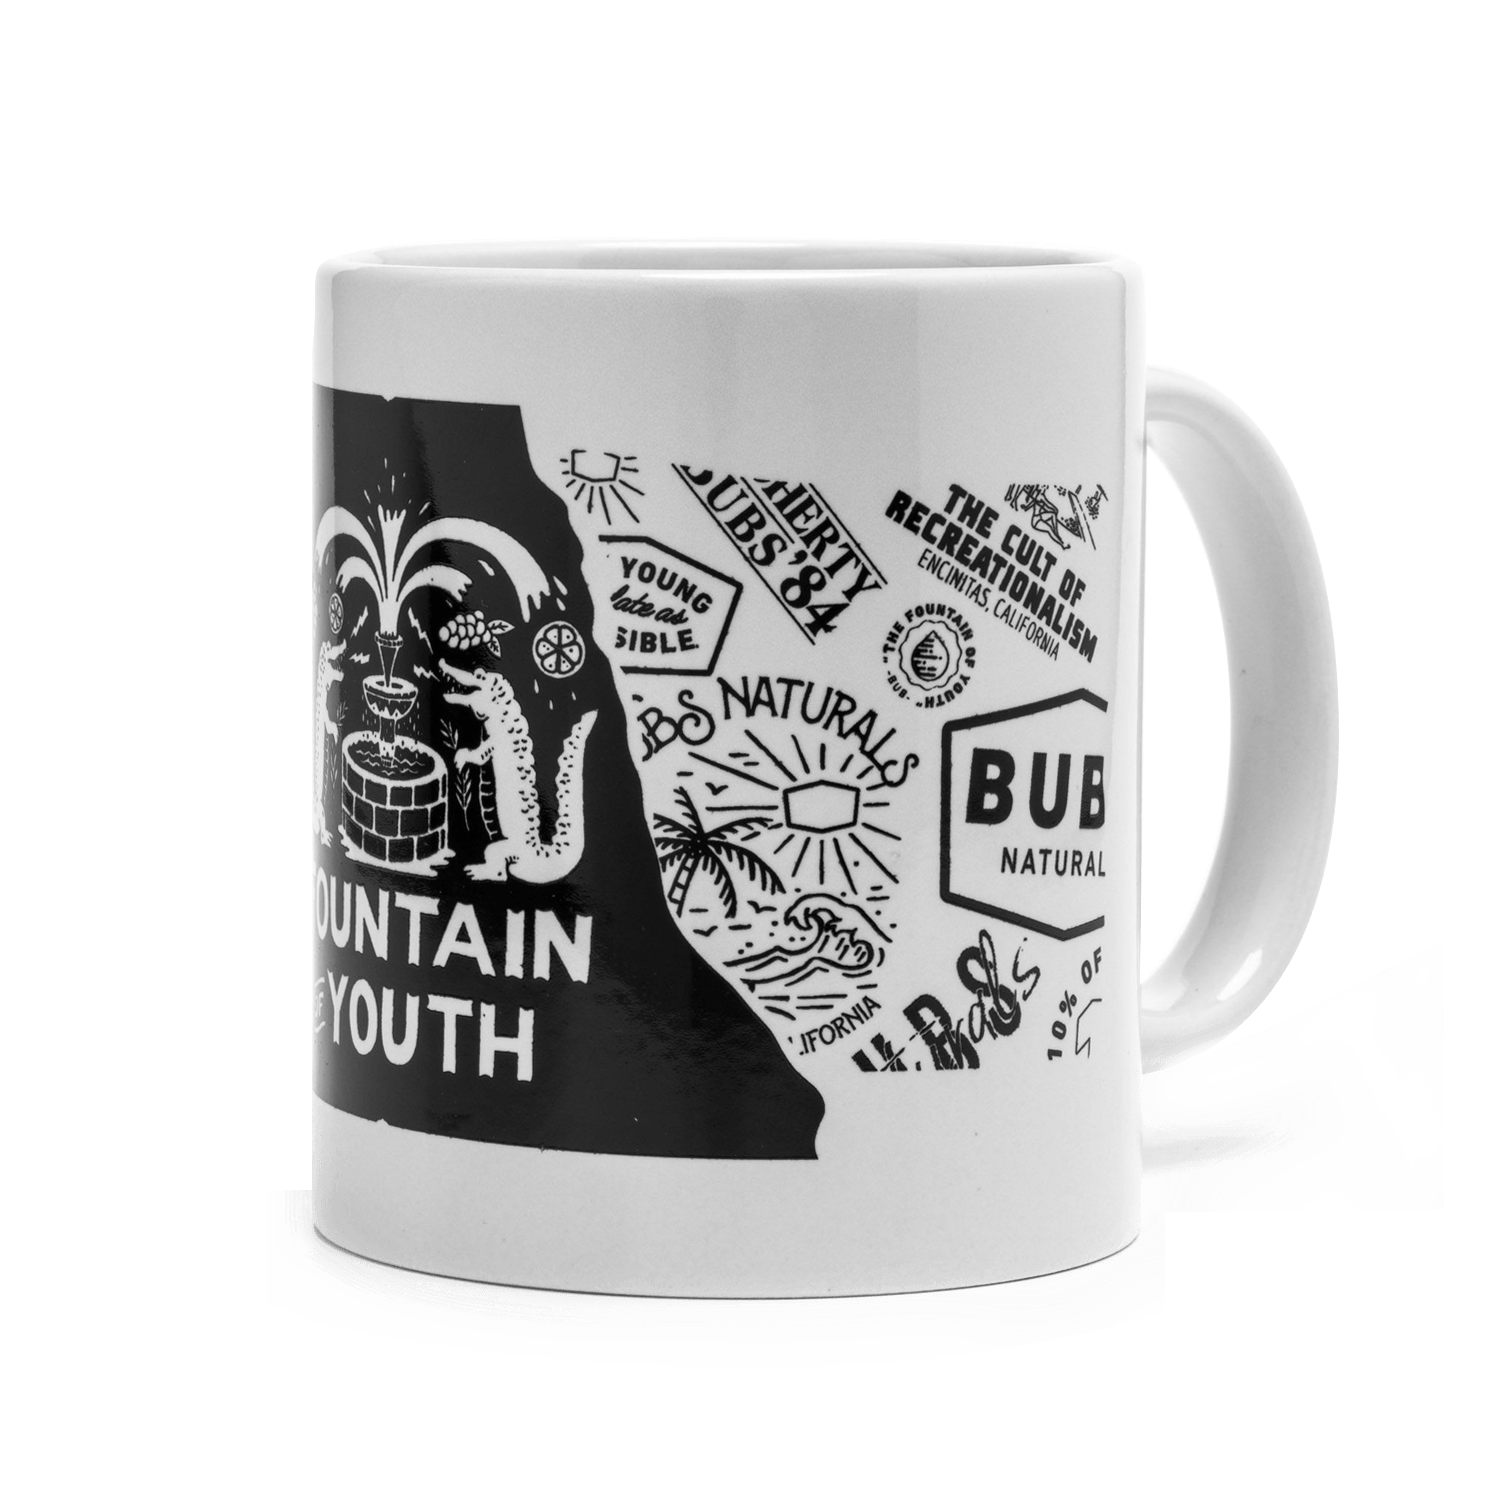 Fountain of Youth Diner Mug BUBS NATURALS